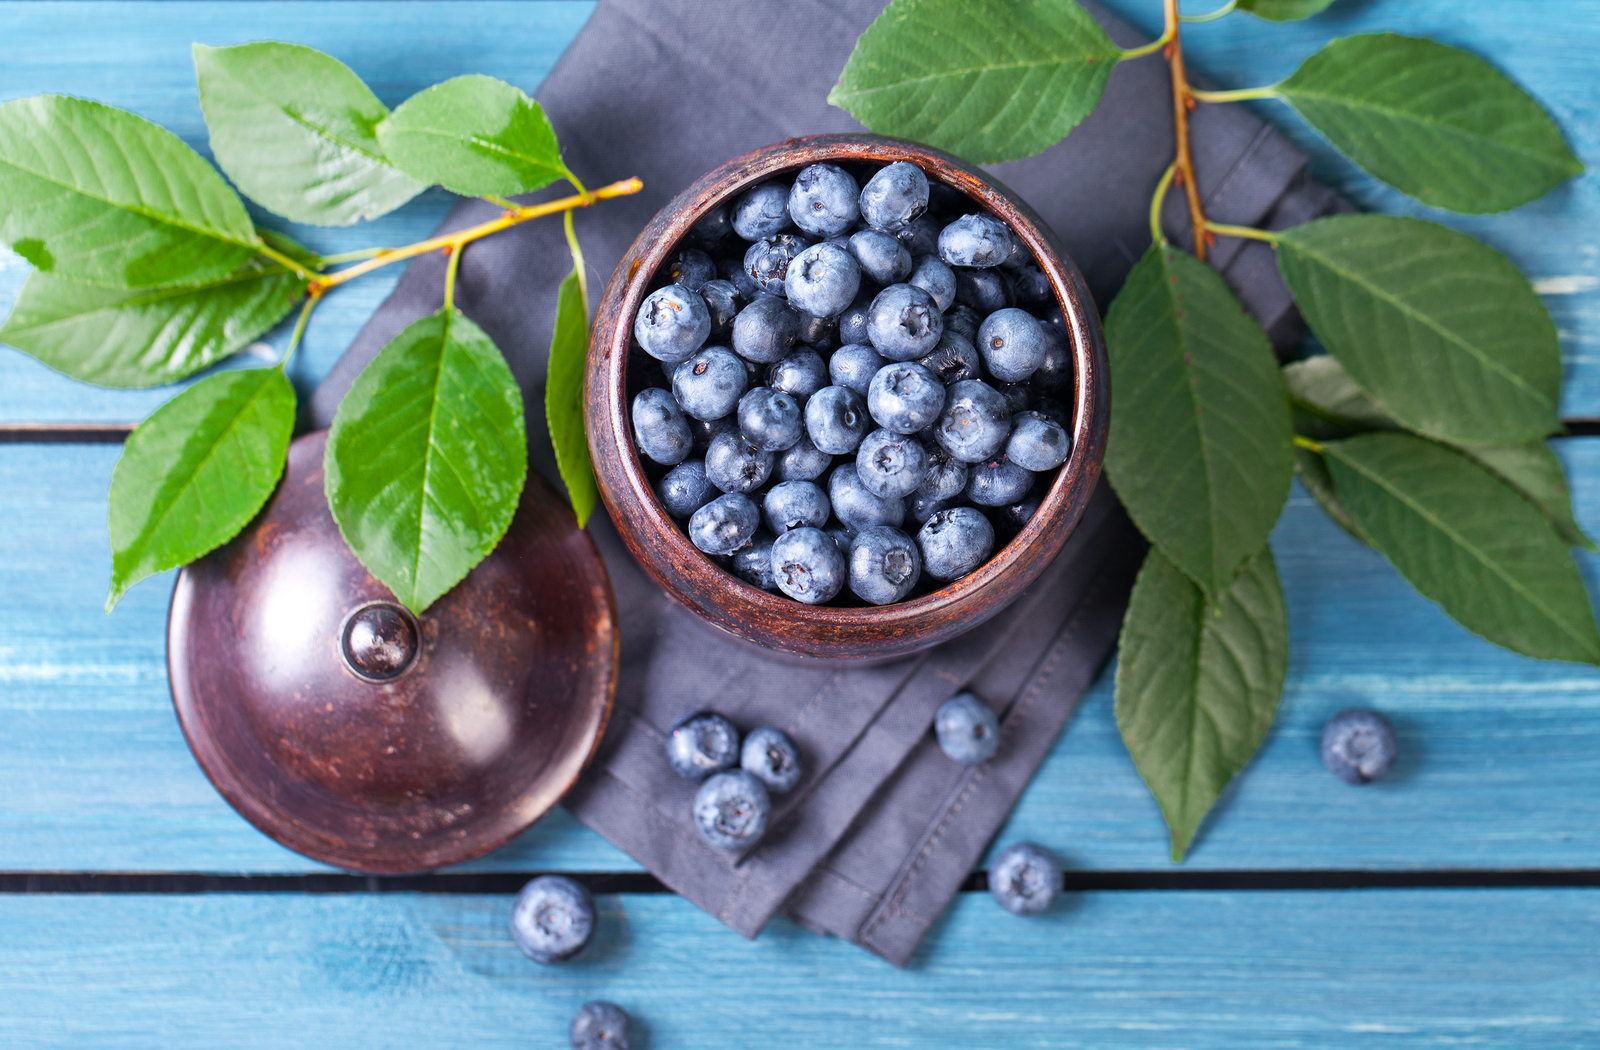 Here are some great ways to celebrate the blueberry with your kiddos.